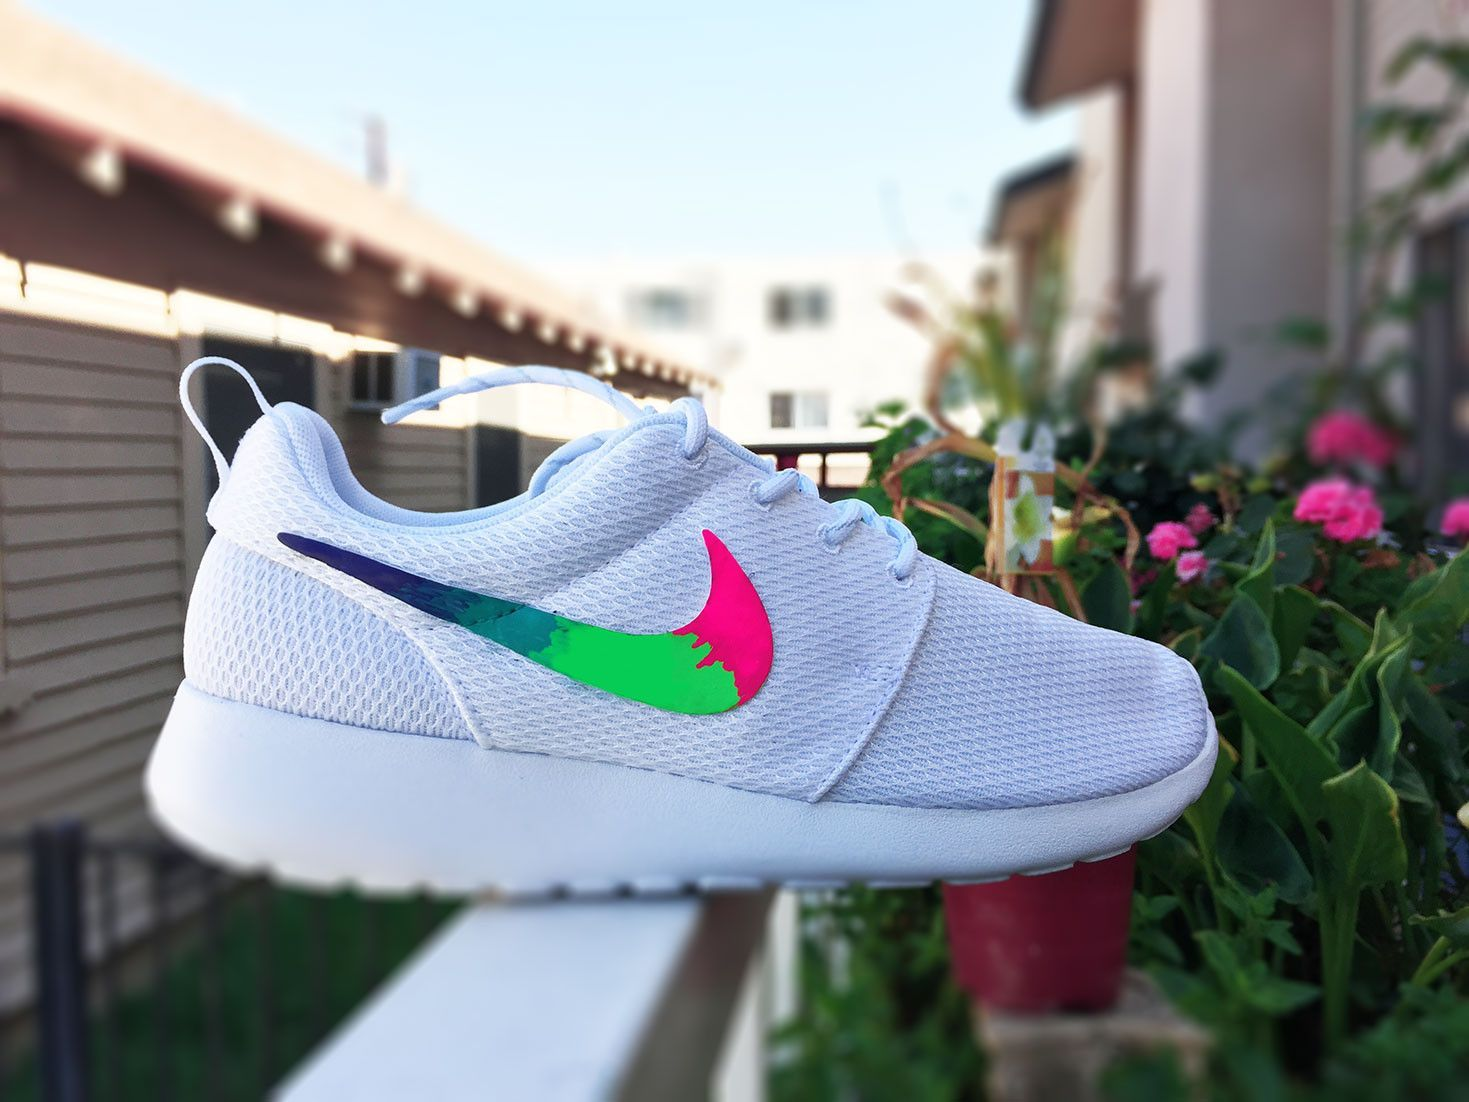 Custom Nike Roshe Run sneakers for women, All white, Rainbow